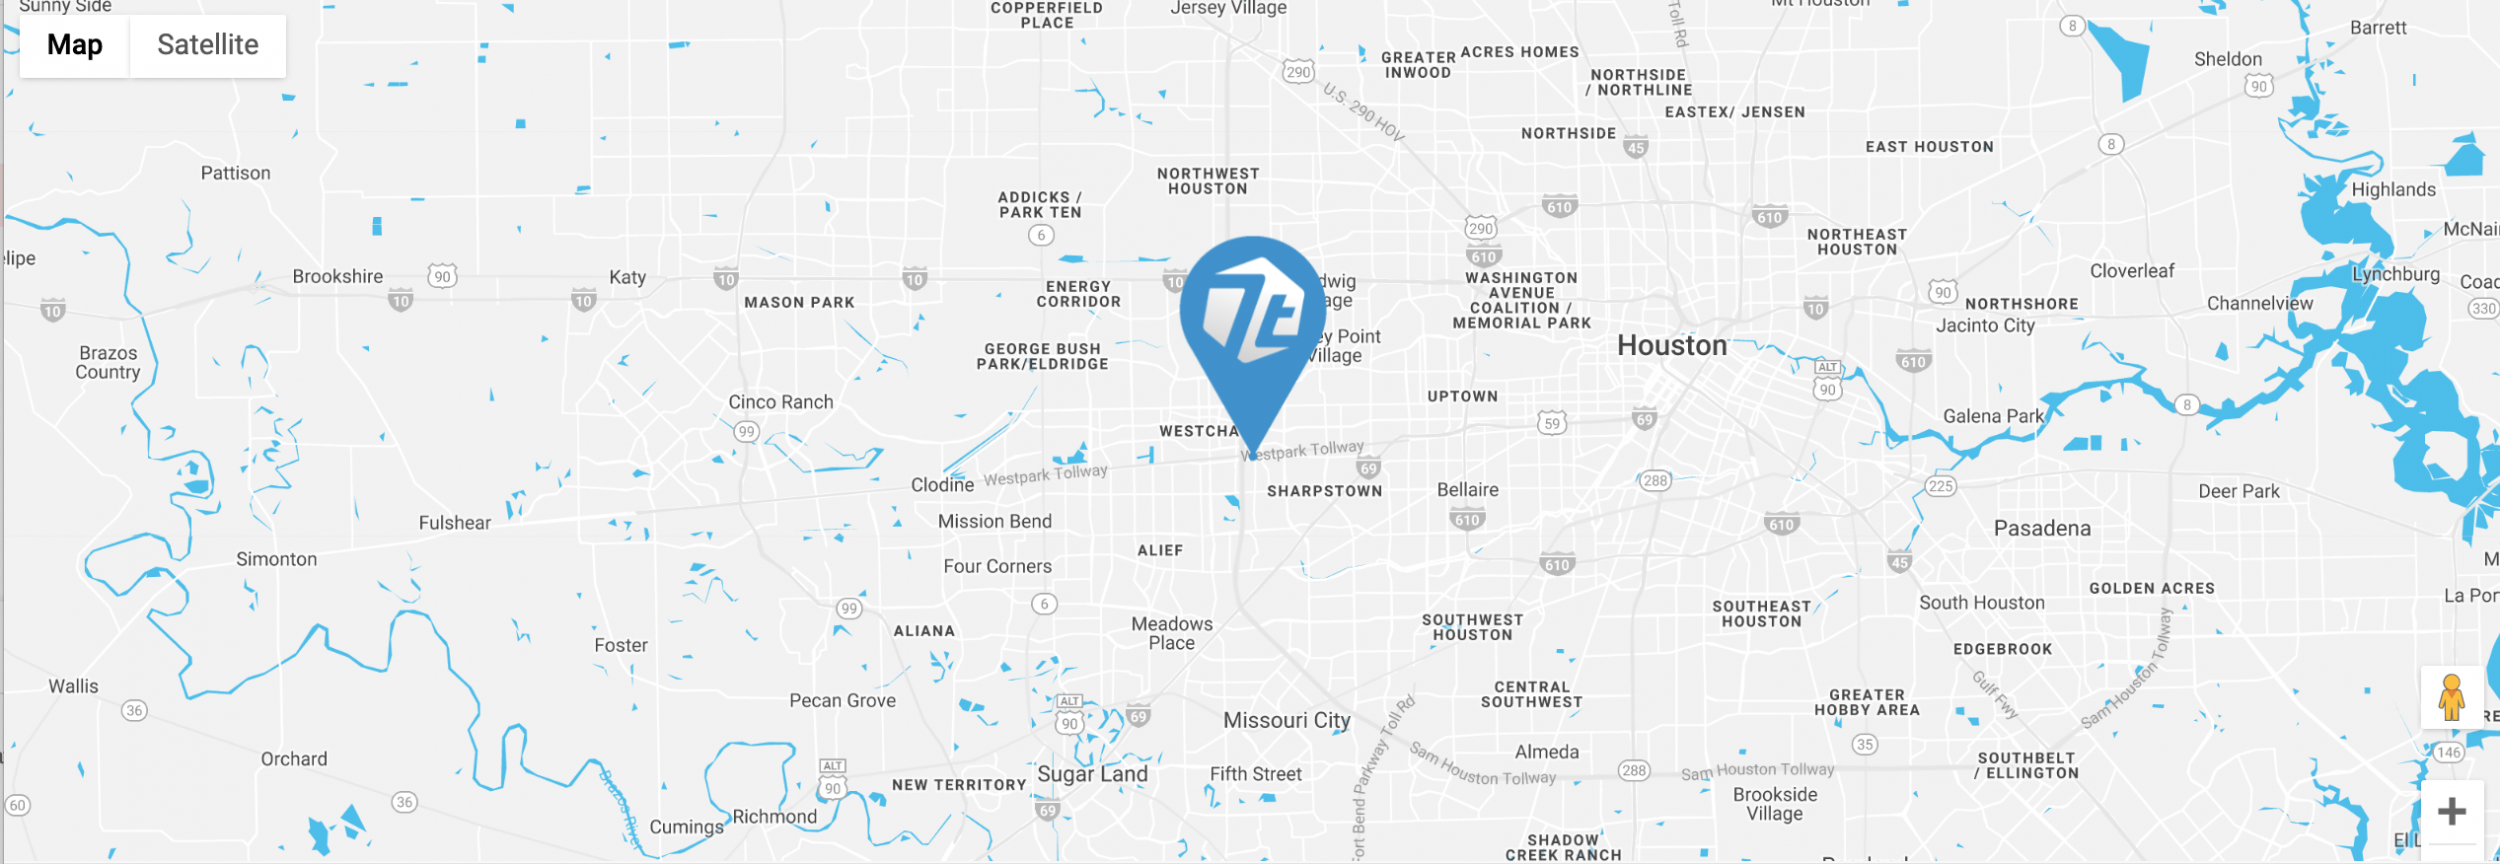 Learn More About Houston Mobile App Development Company 7T